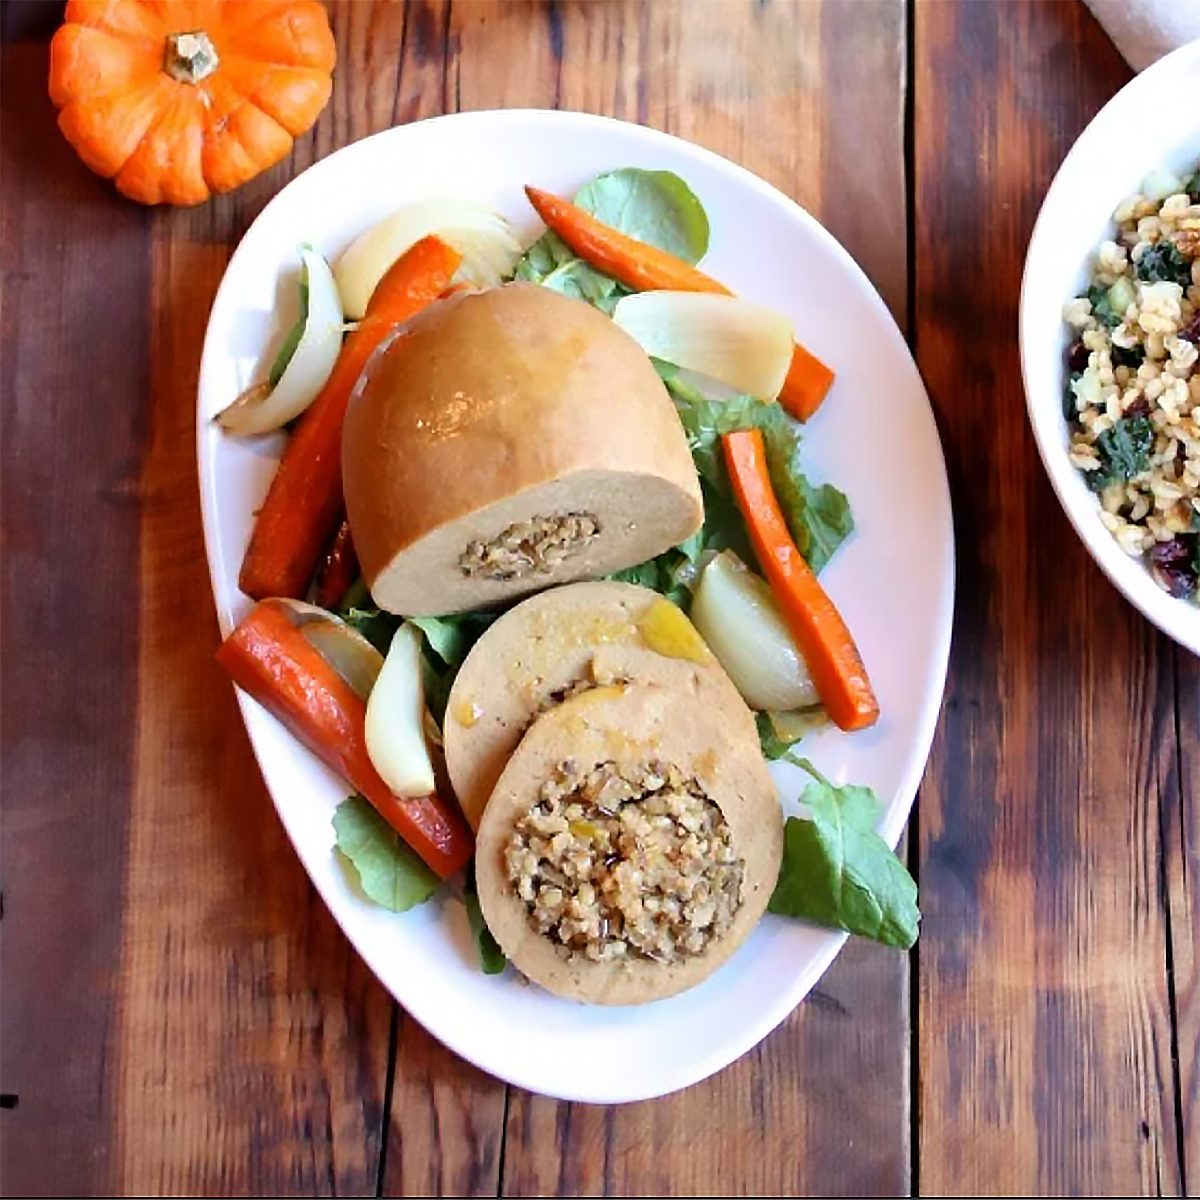 Tofurky Roast for a Vegetarian Thanksgiving dish